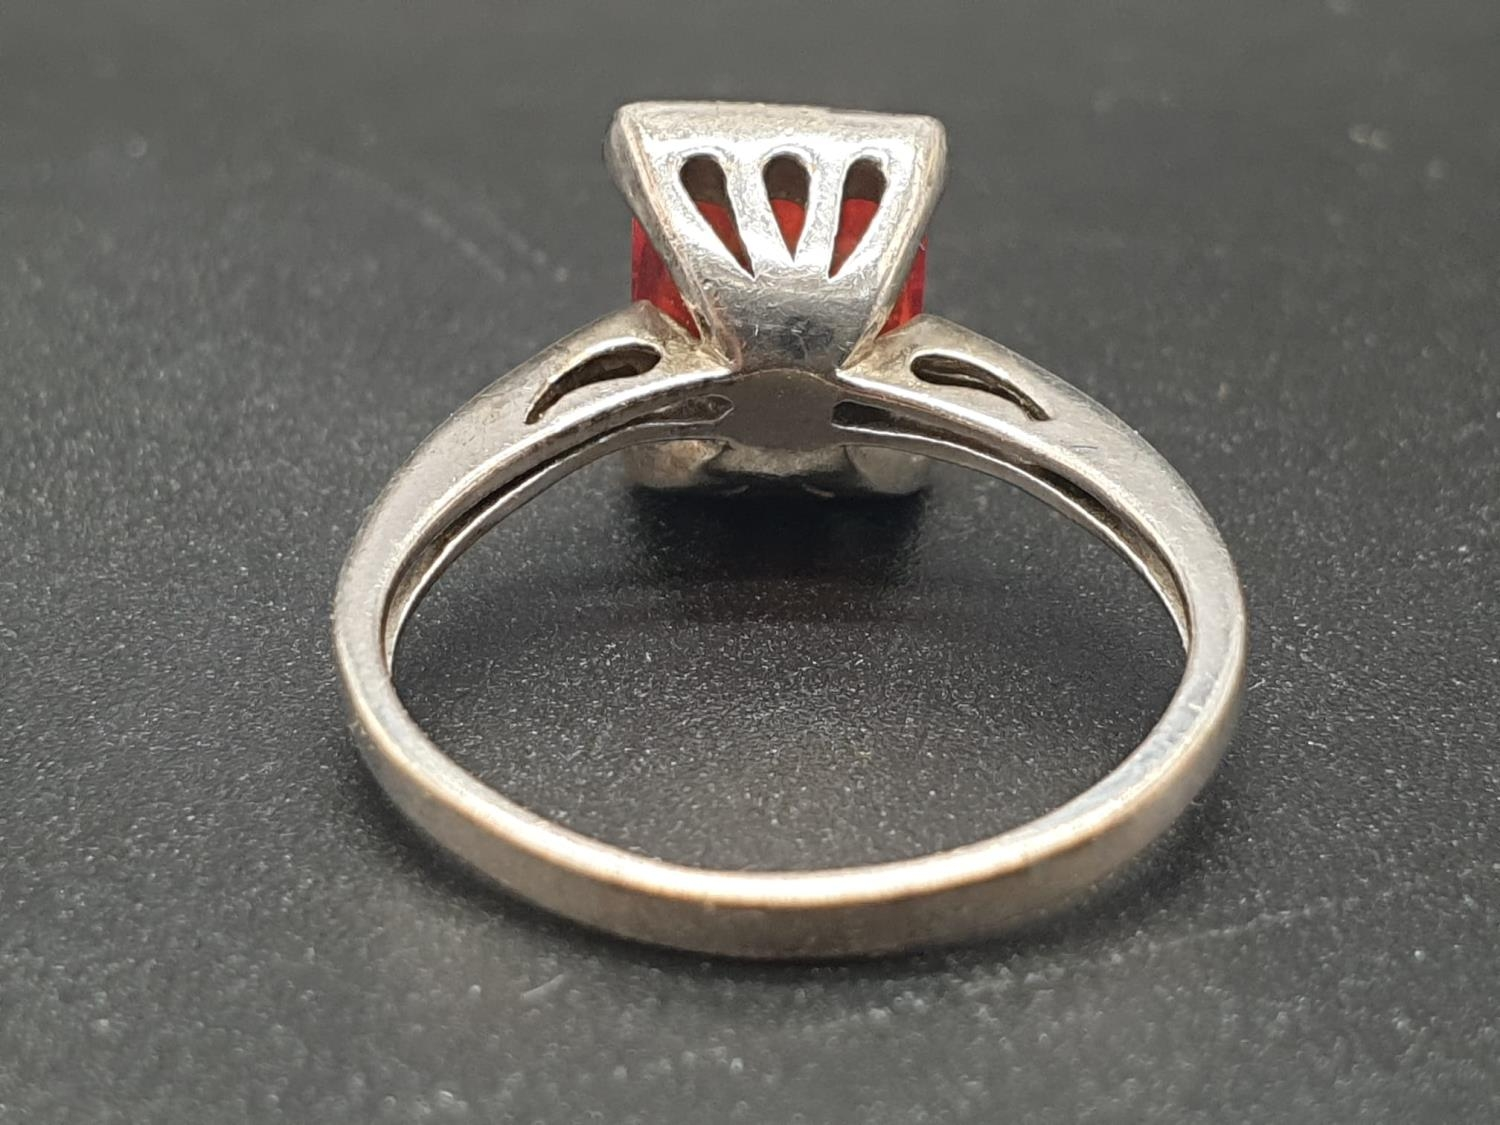 Silver Ring with centre set red stone. Size L. 2.74g - Image 4 of 6